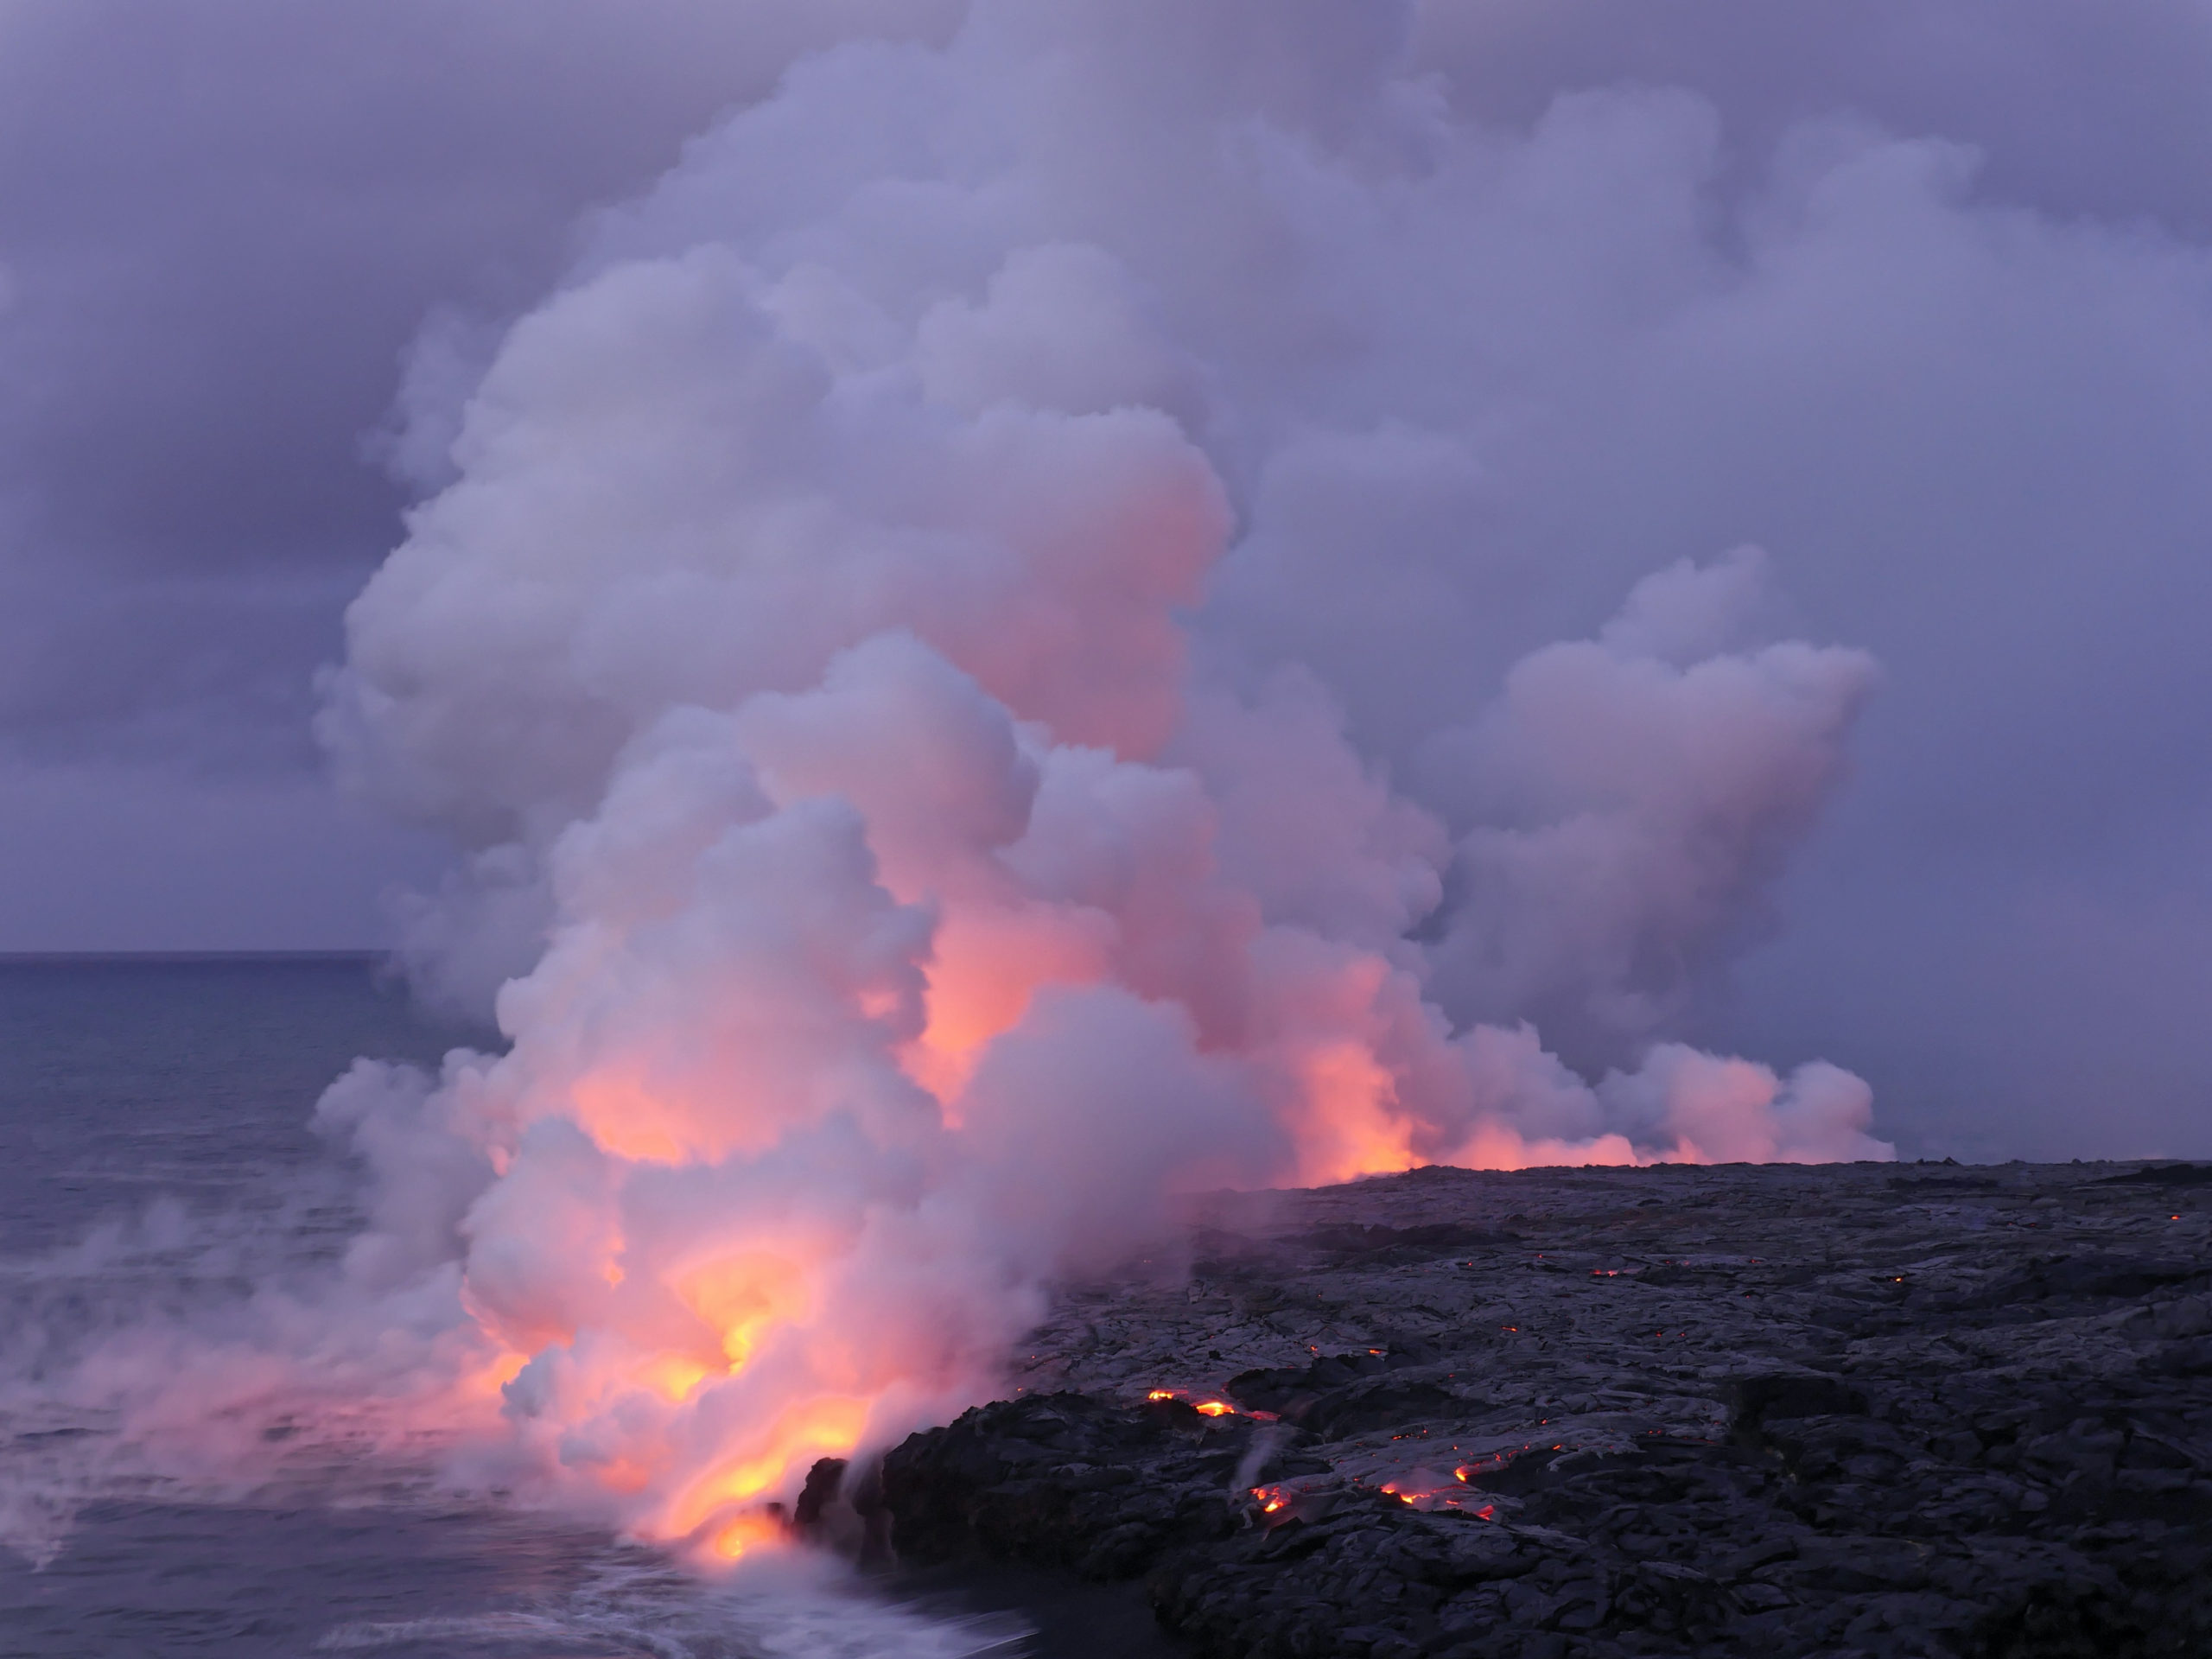 Lava flowing into the sea from Kilauea in Hawaii volcano national park. Photo by Marc Szeglat on Unsplash